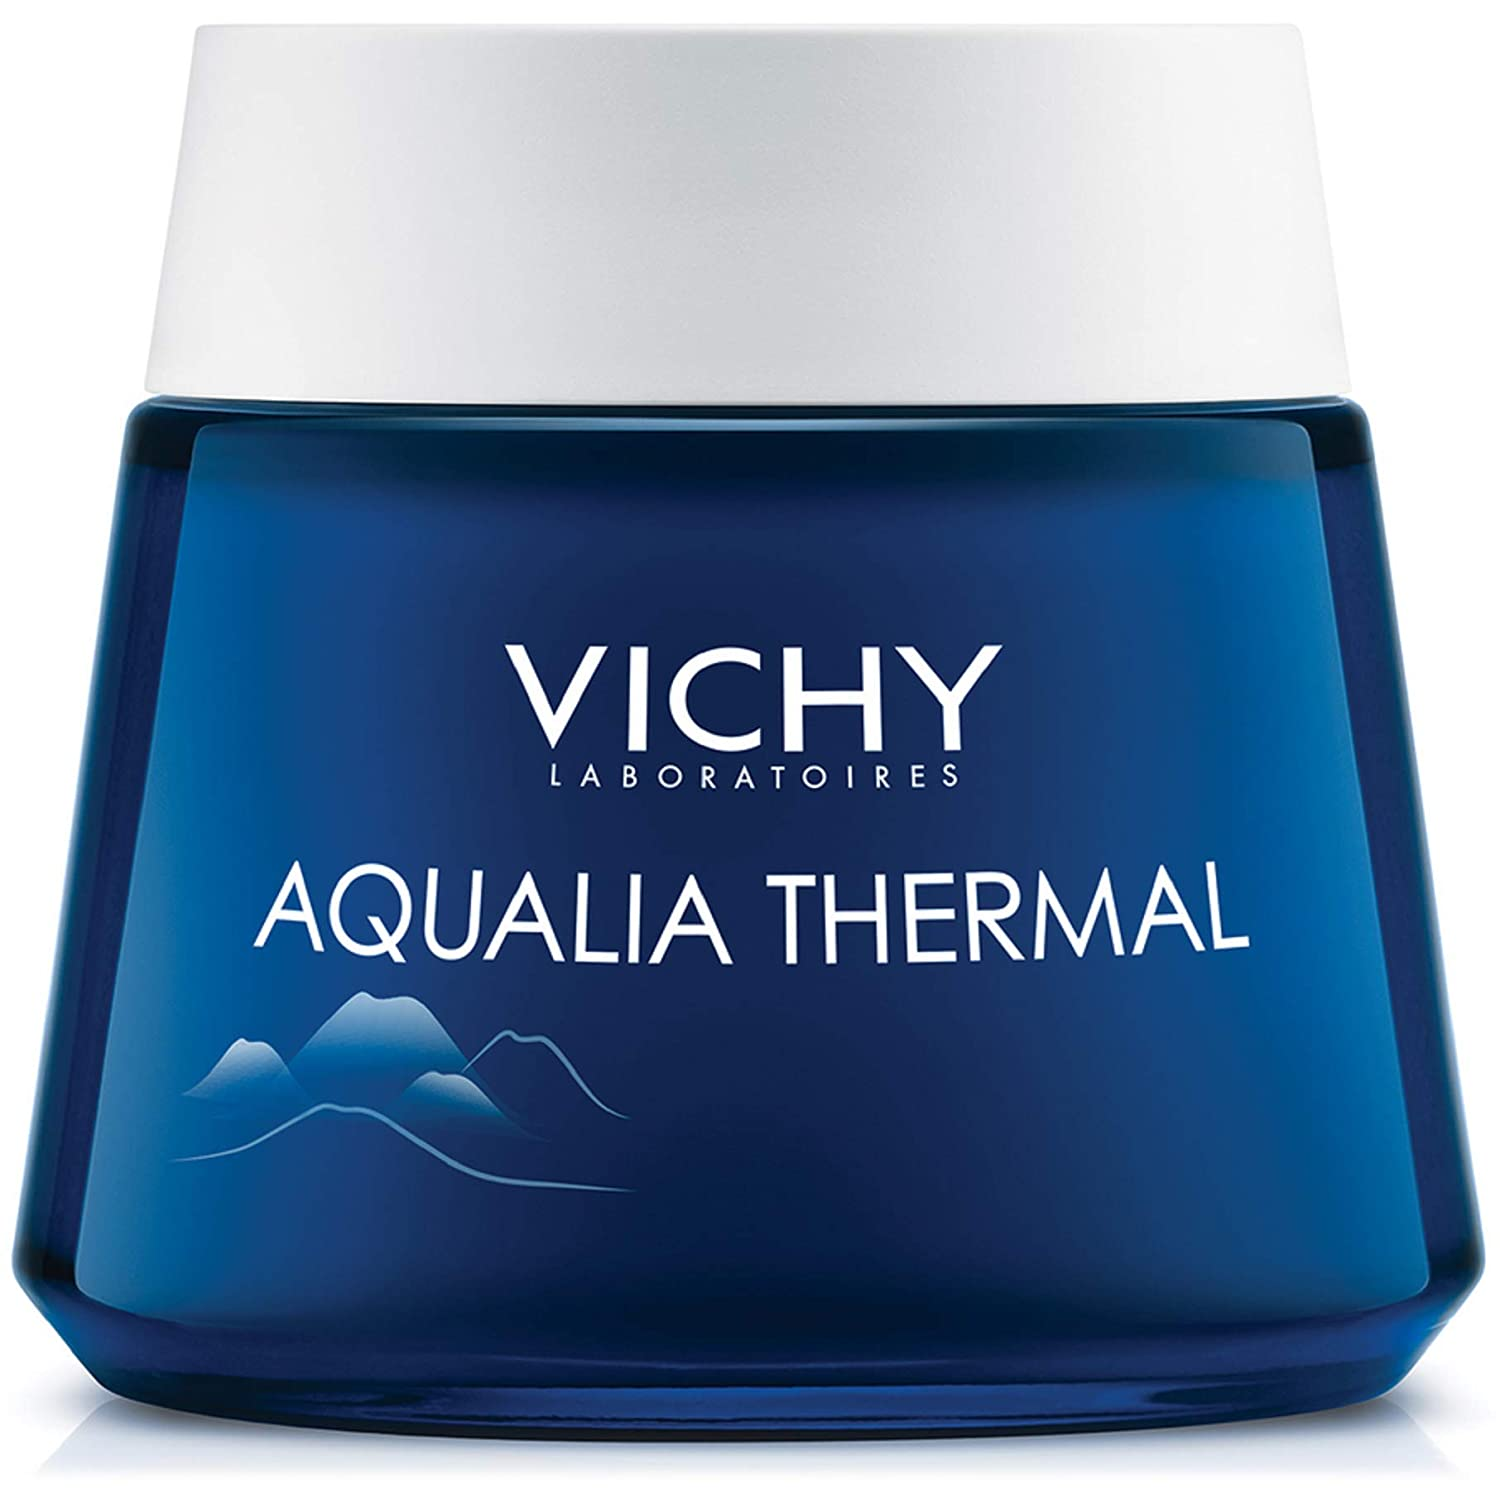 Vichy's Aqua Thermal Overnight Mask